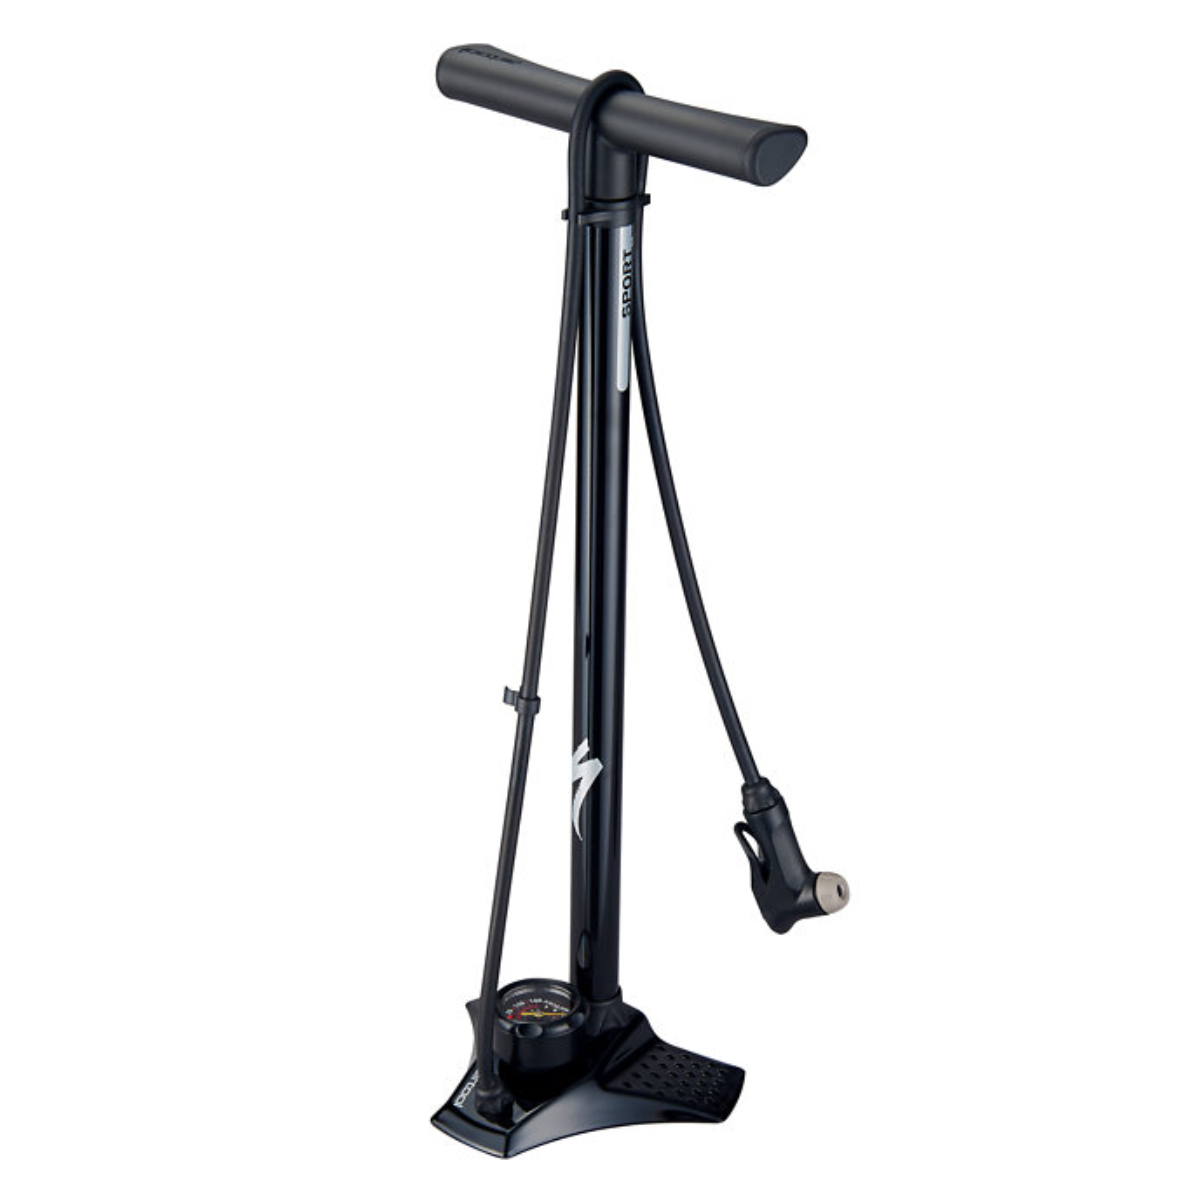 POMPE A PIED SPECIALIZED AIR TOOL SPORT II